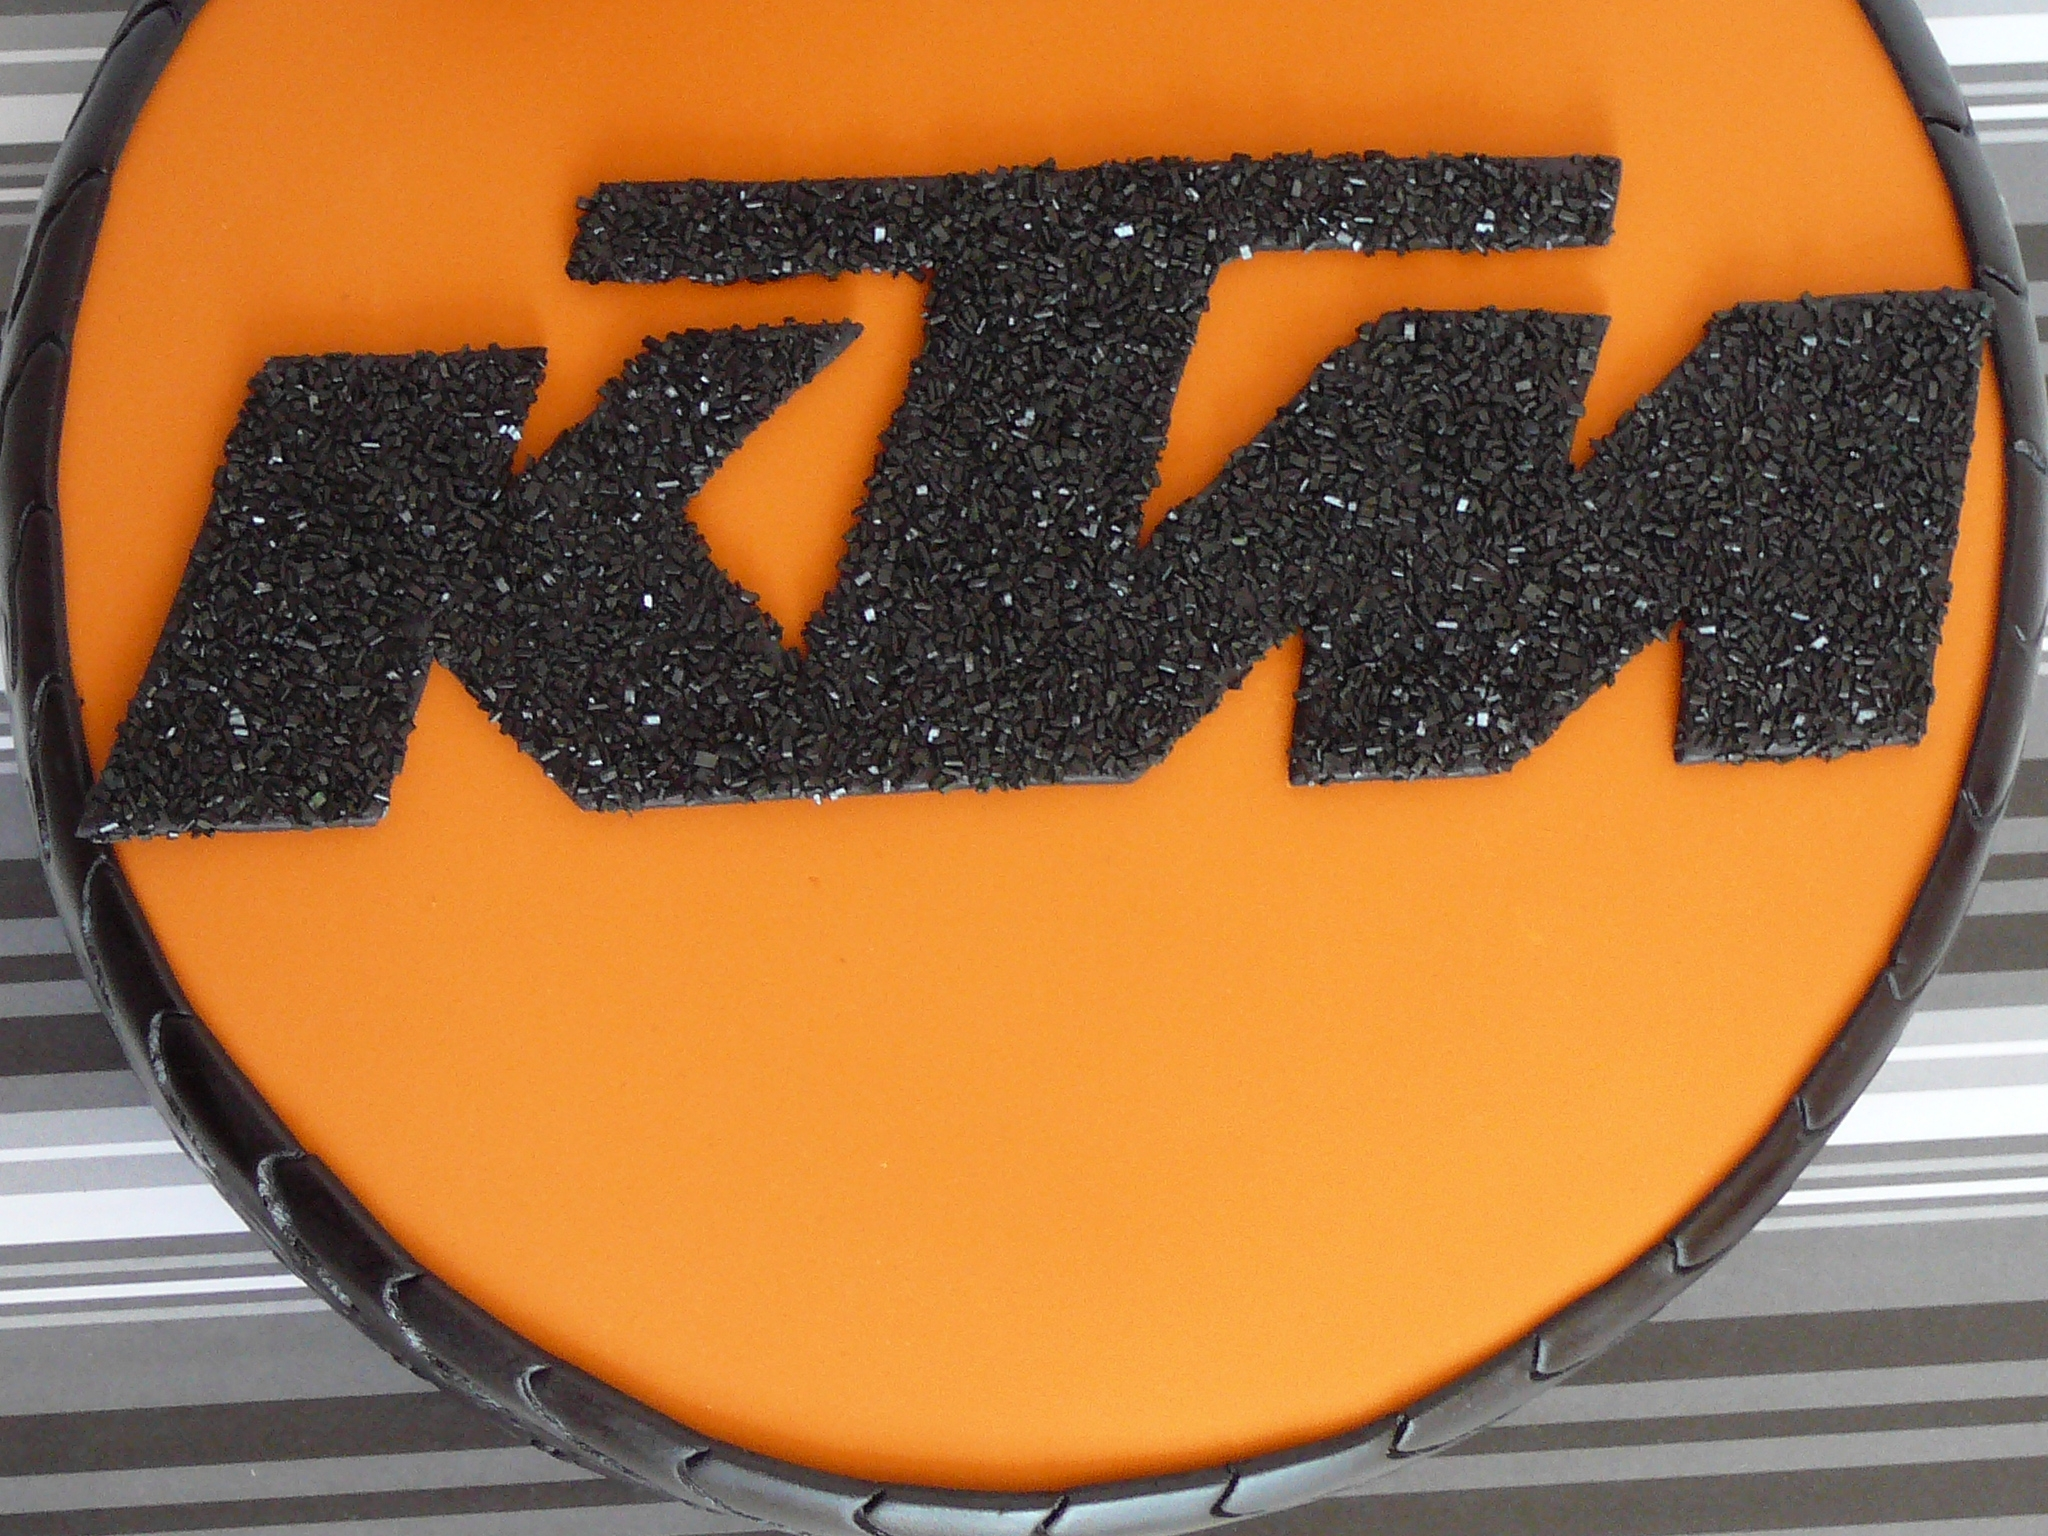 Ktm Motorcycle Wheel